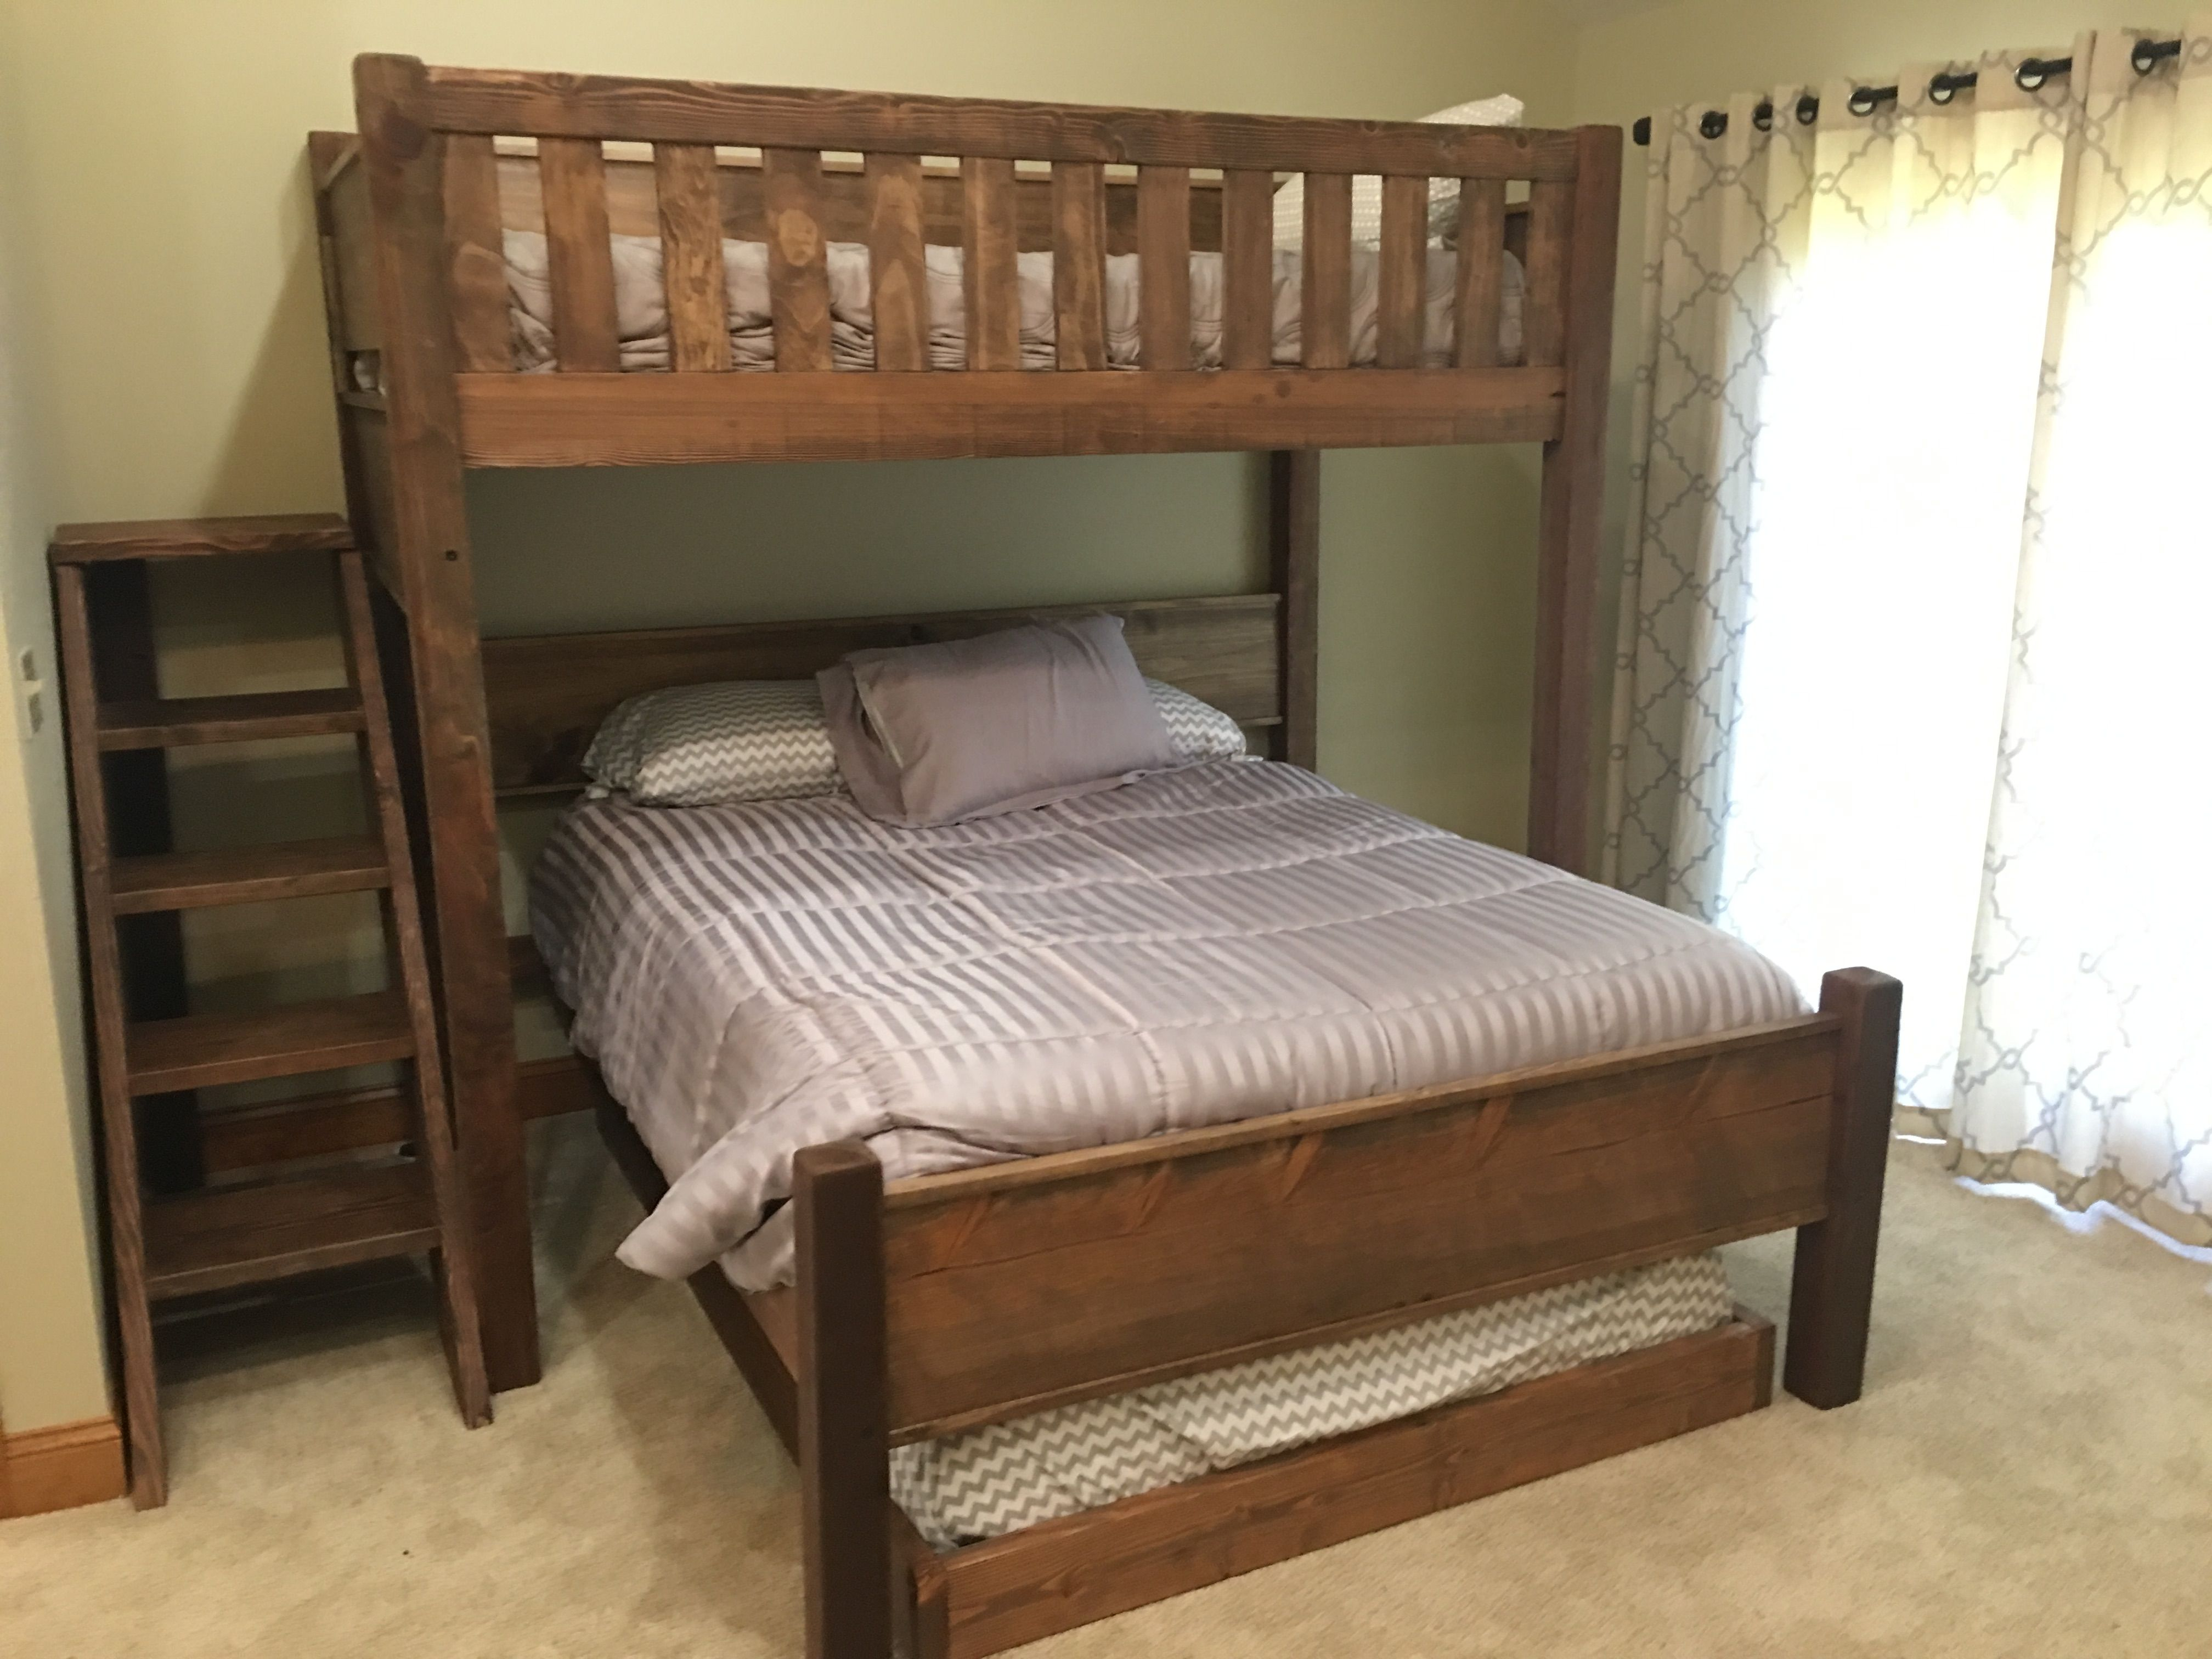 best beds episode bed chip adults to season bunks cool fixer queen size pin from bunk ever joanna sleep upper for